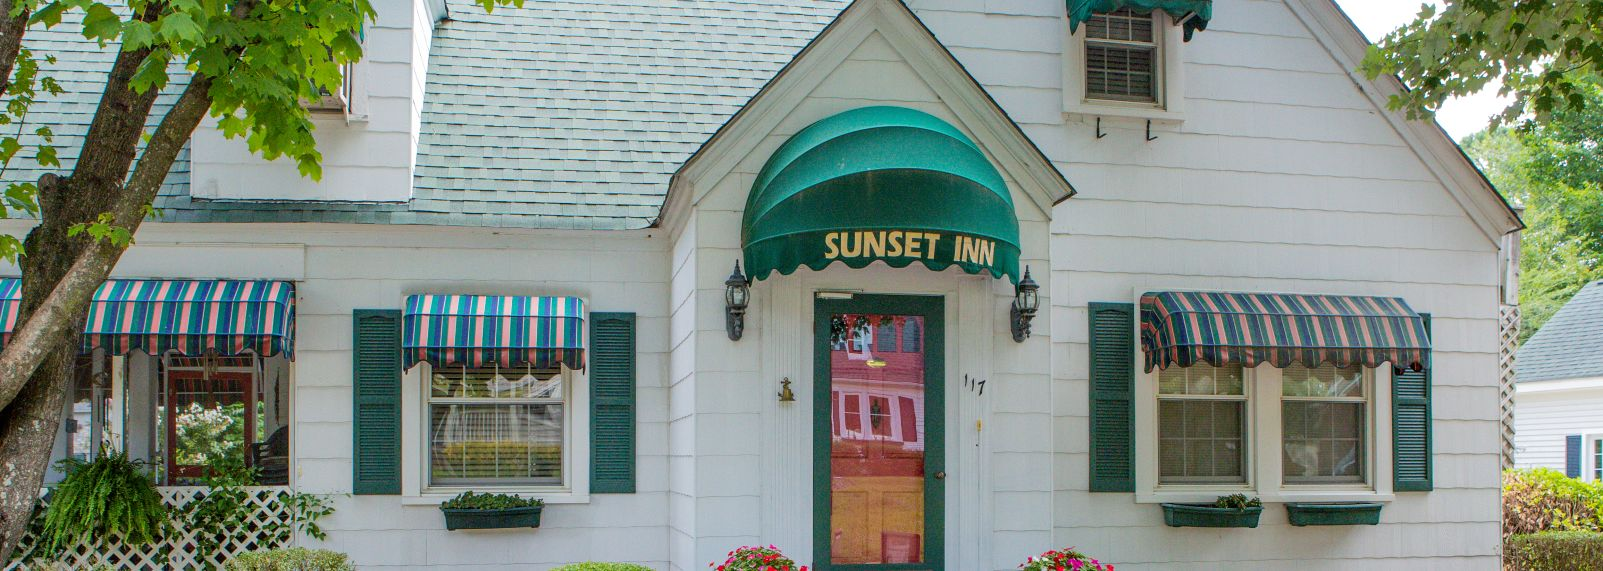 Sunset_Inn_2.JPG